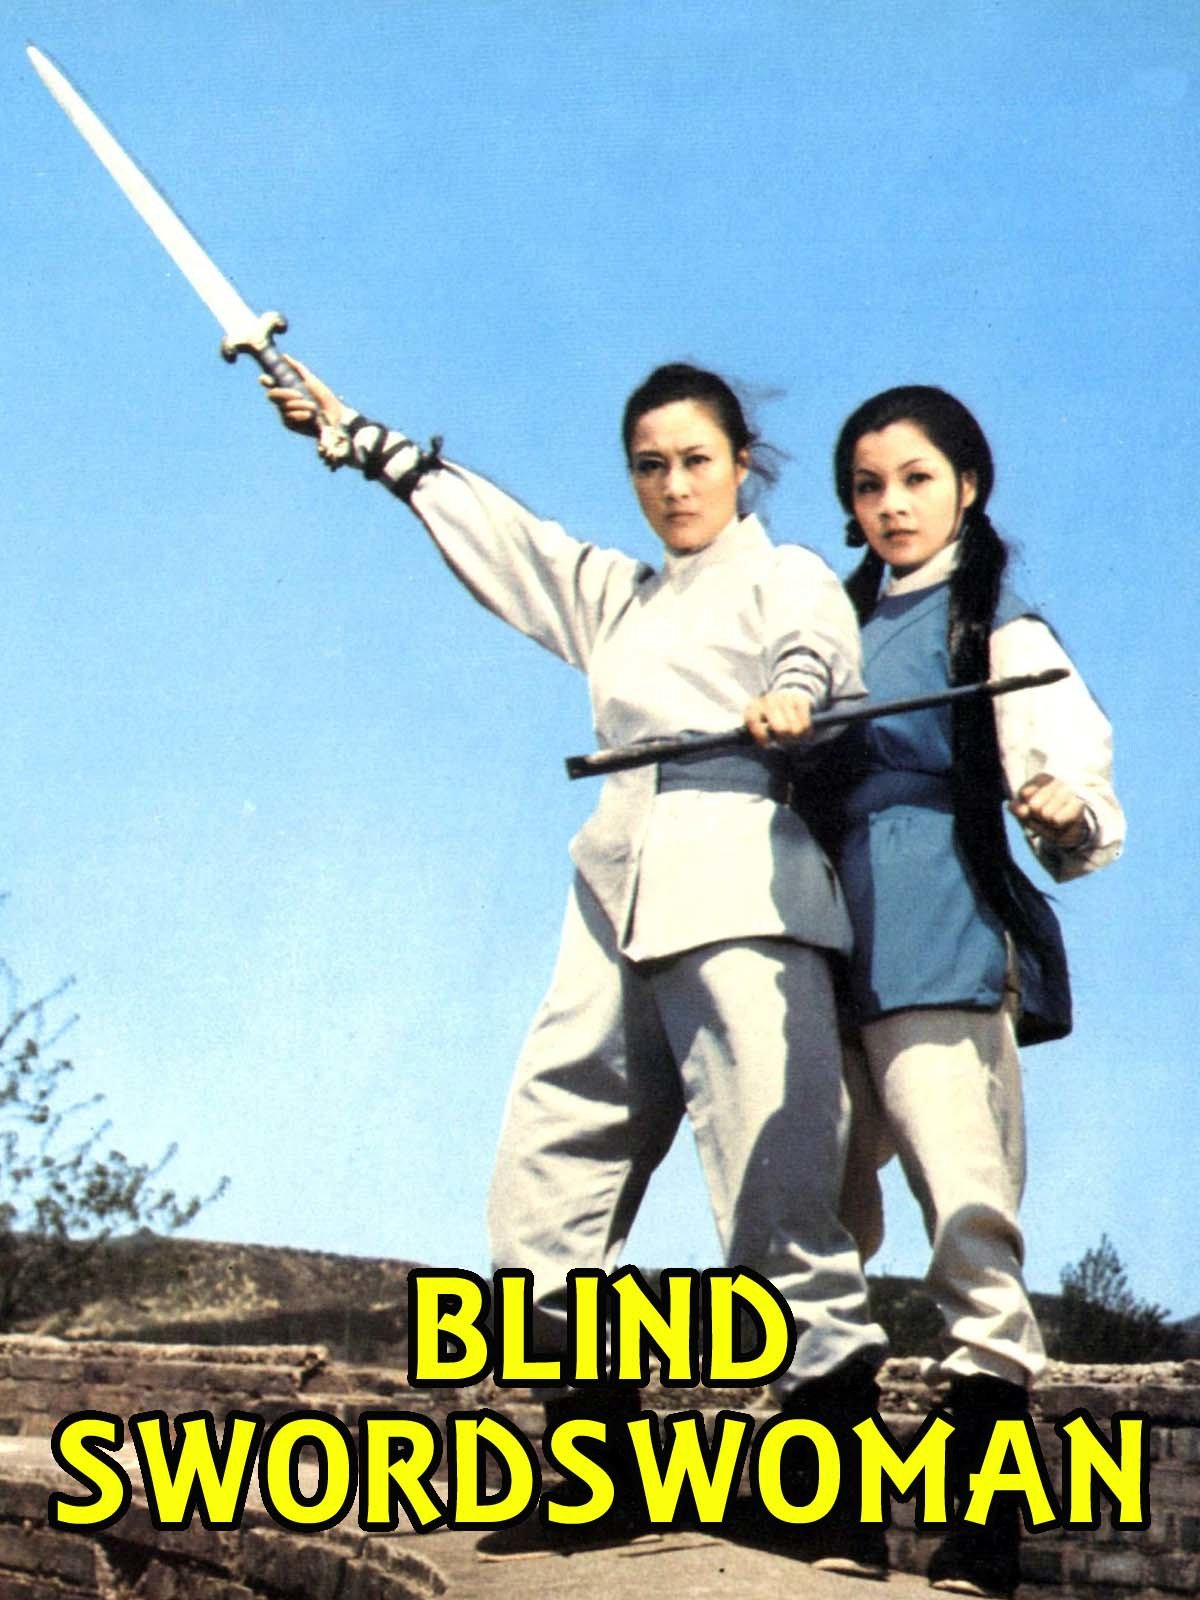 Blind Swordswoman